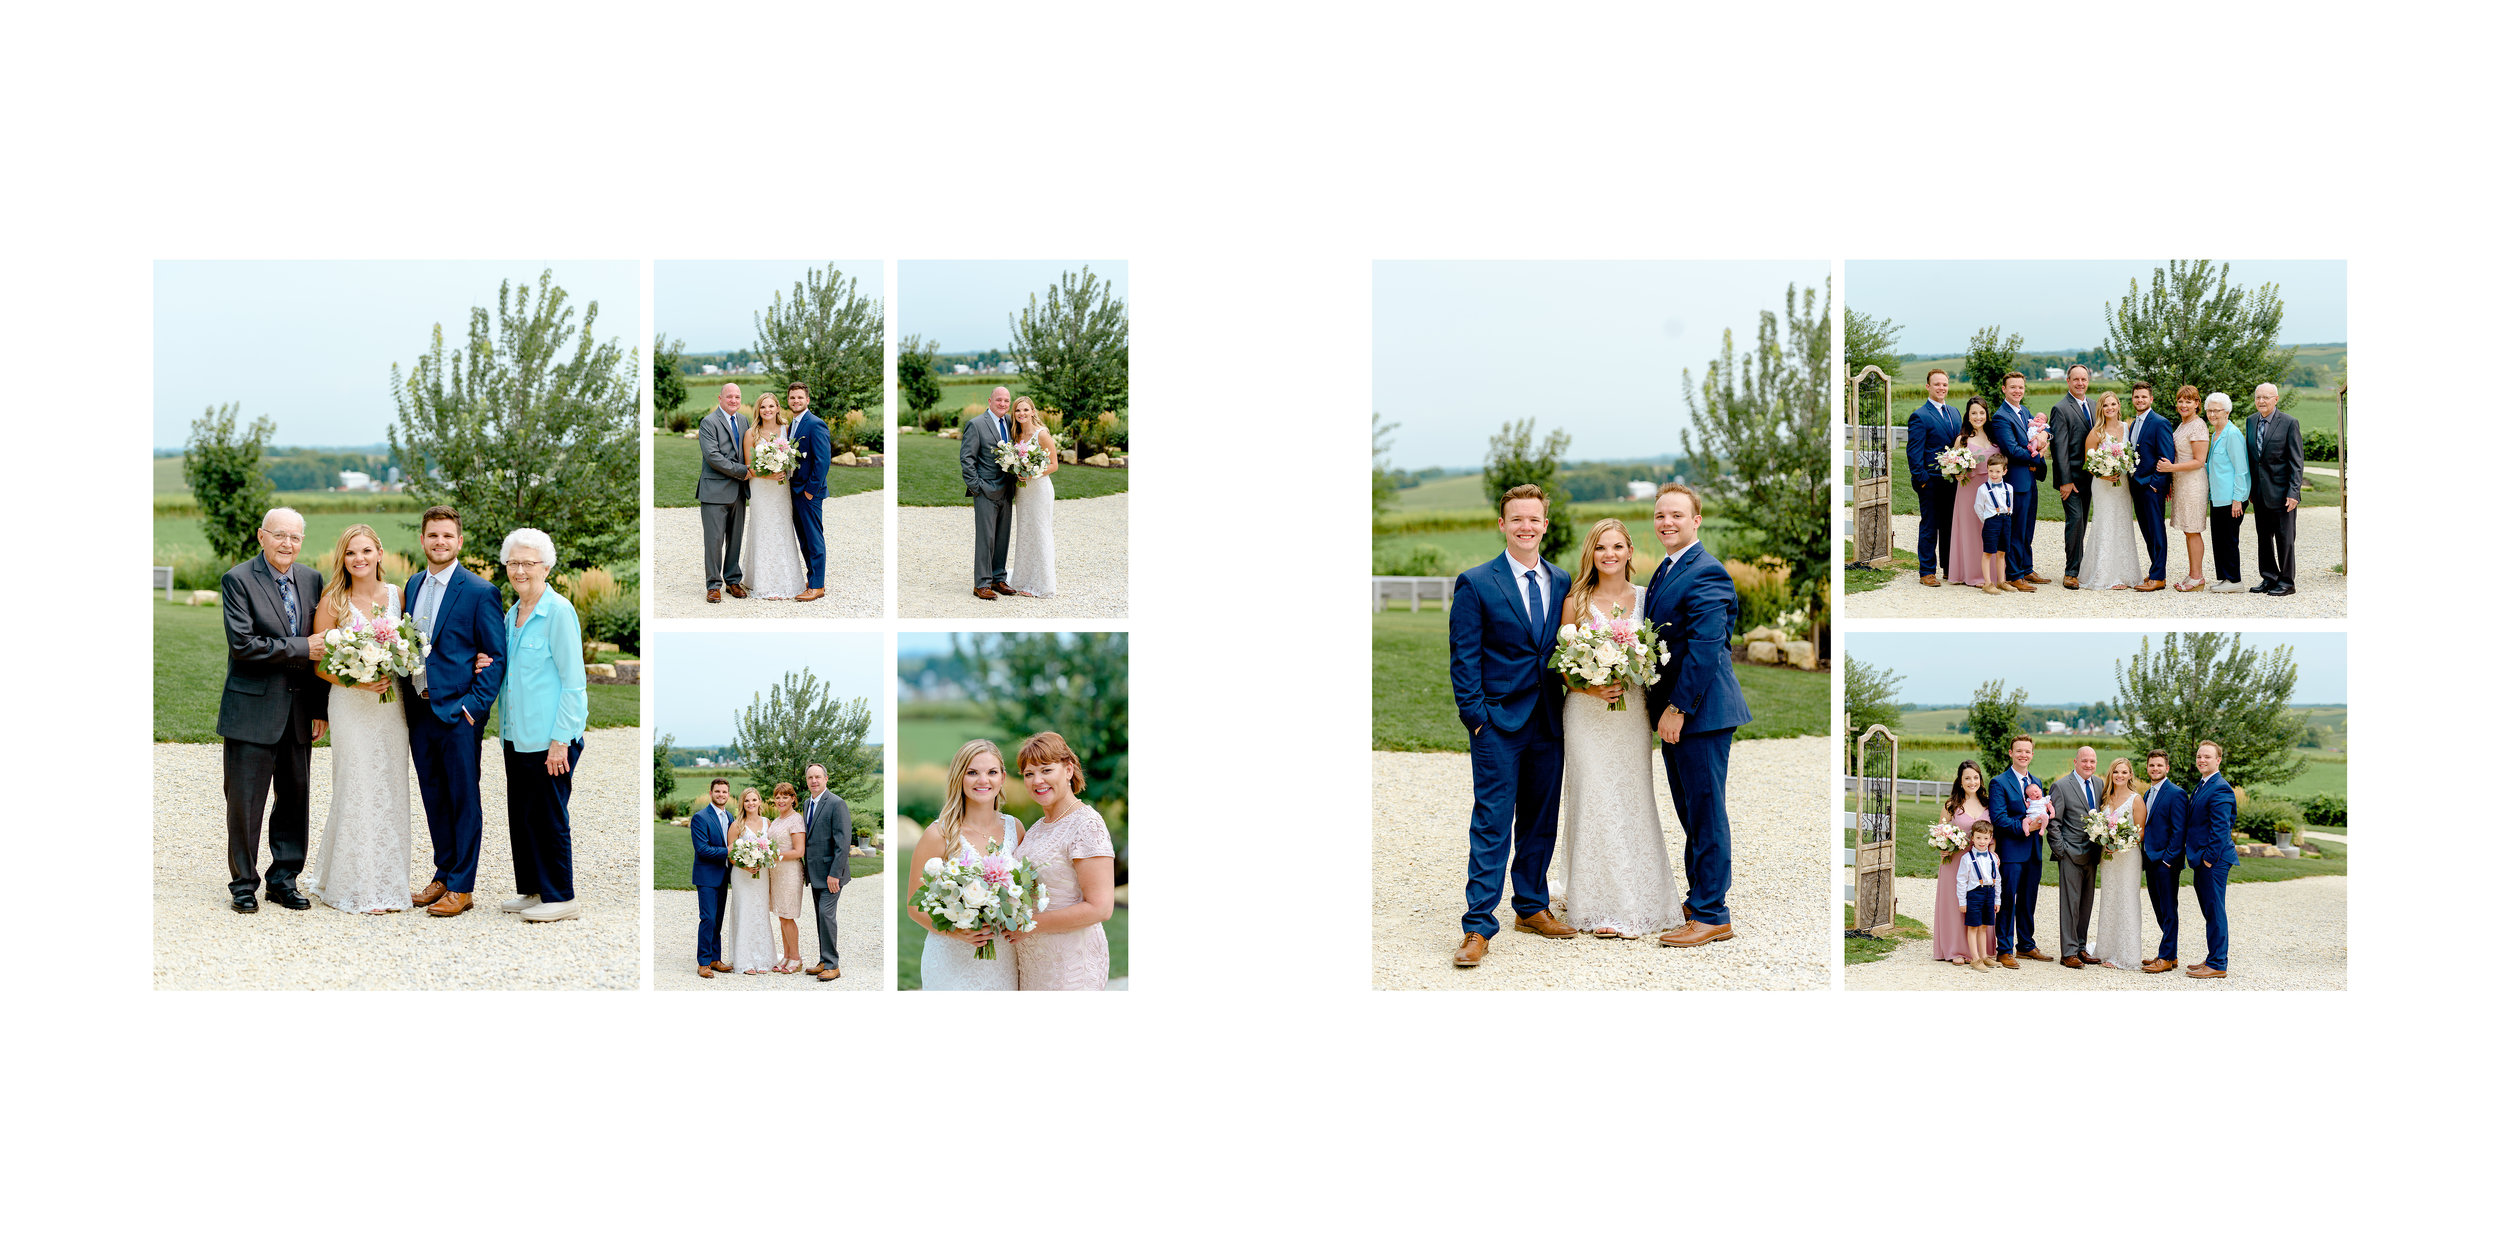 Ashley + Justin - Wedding Album_18.jpg